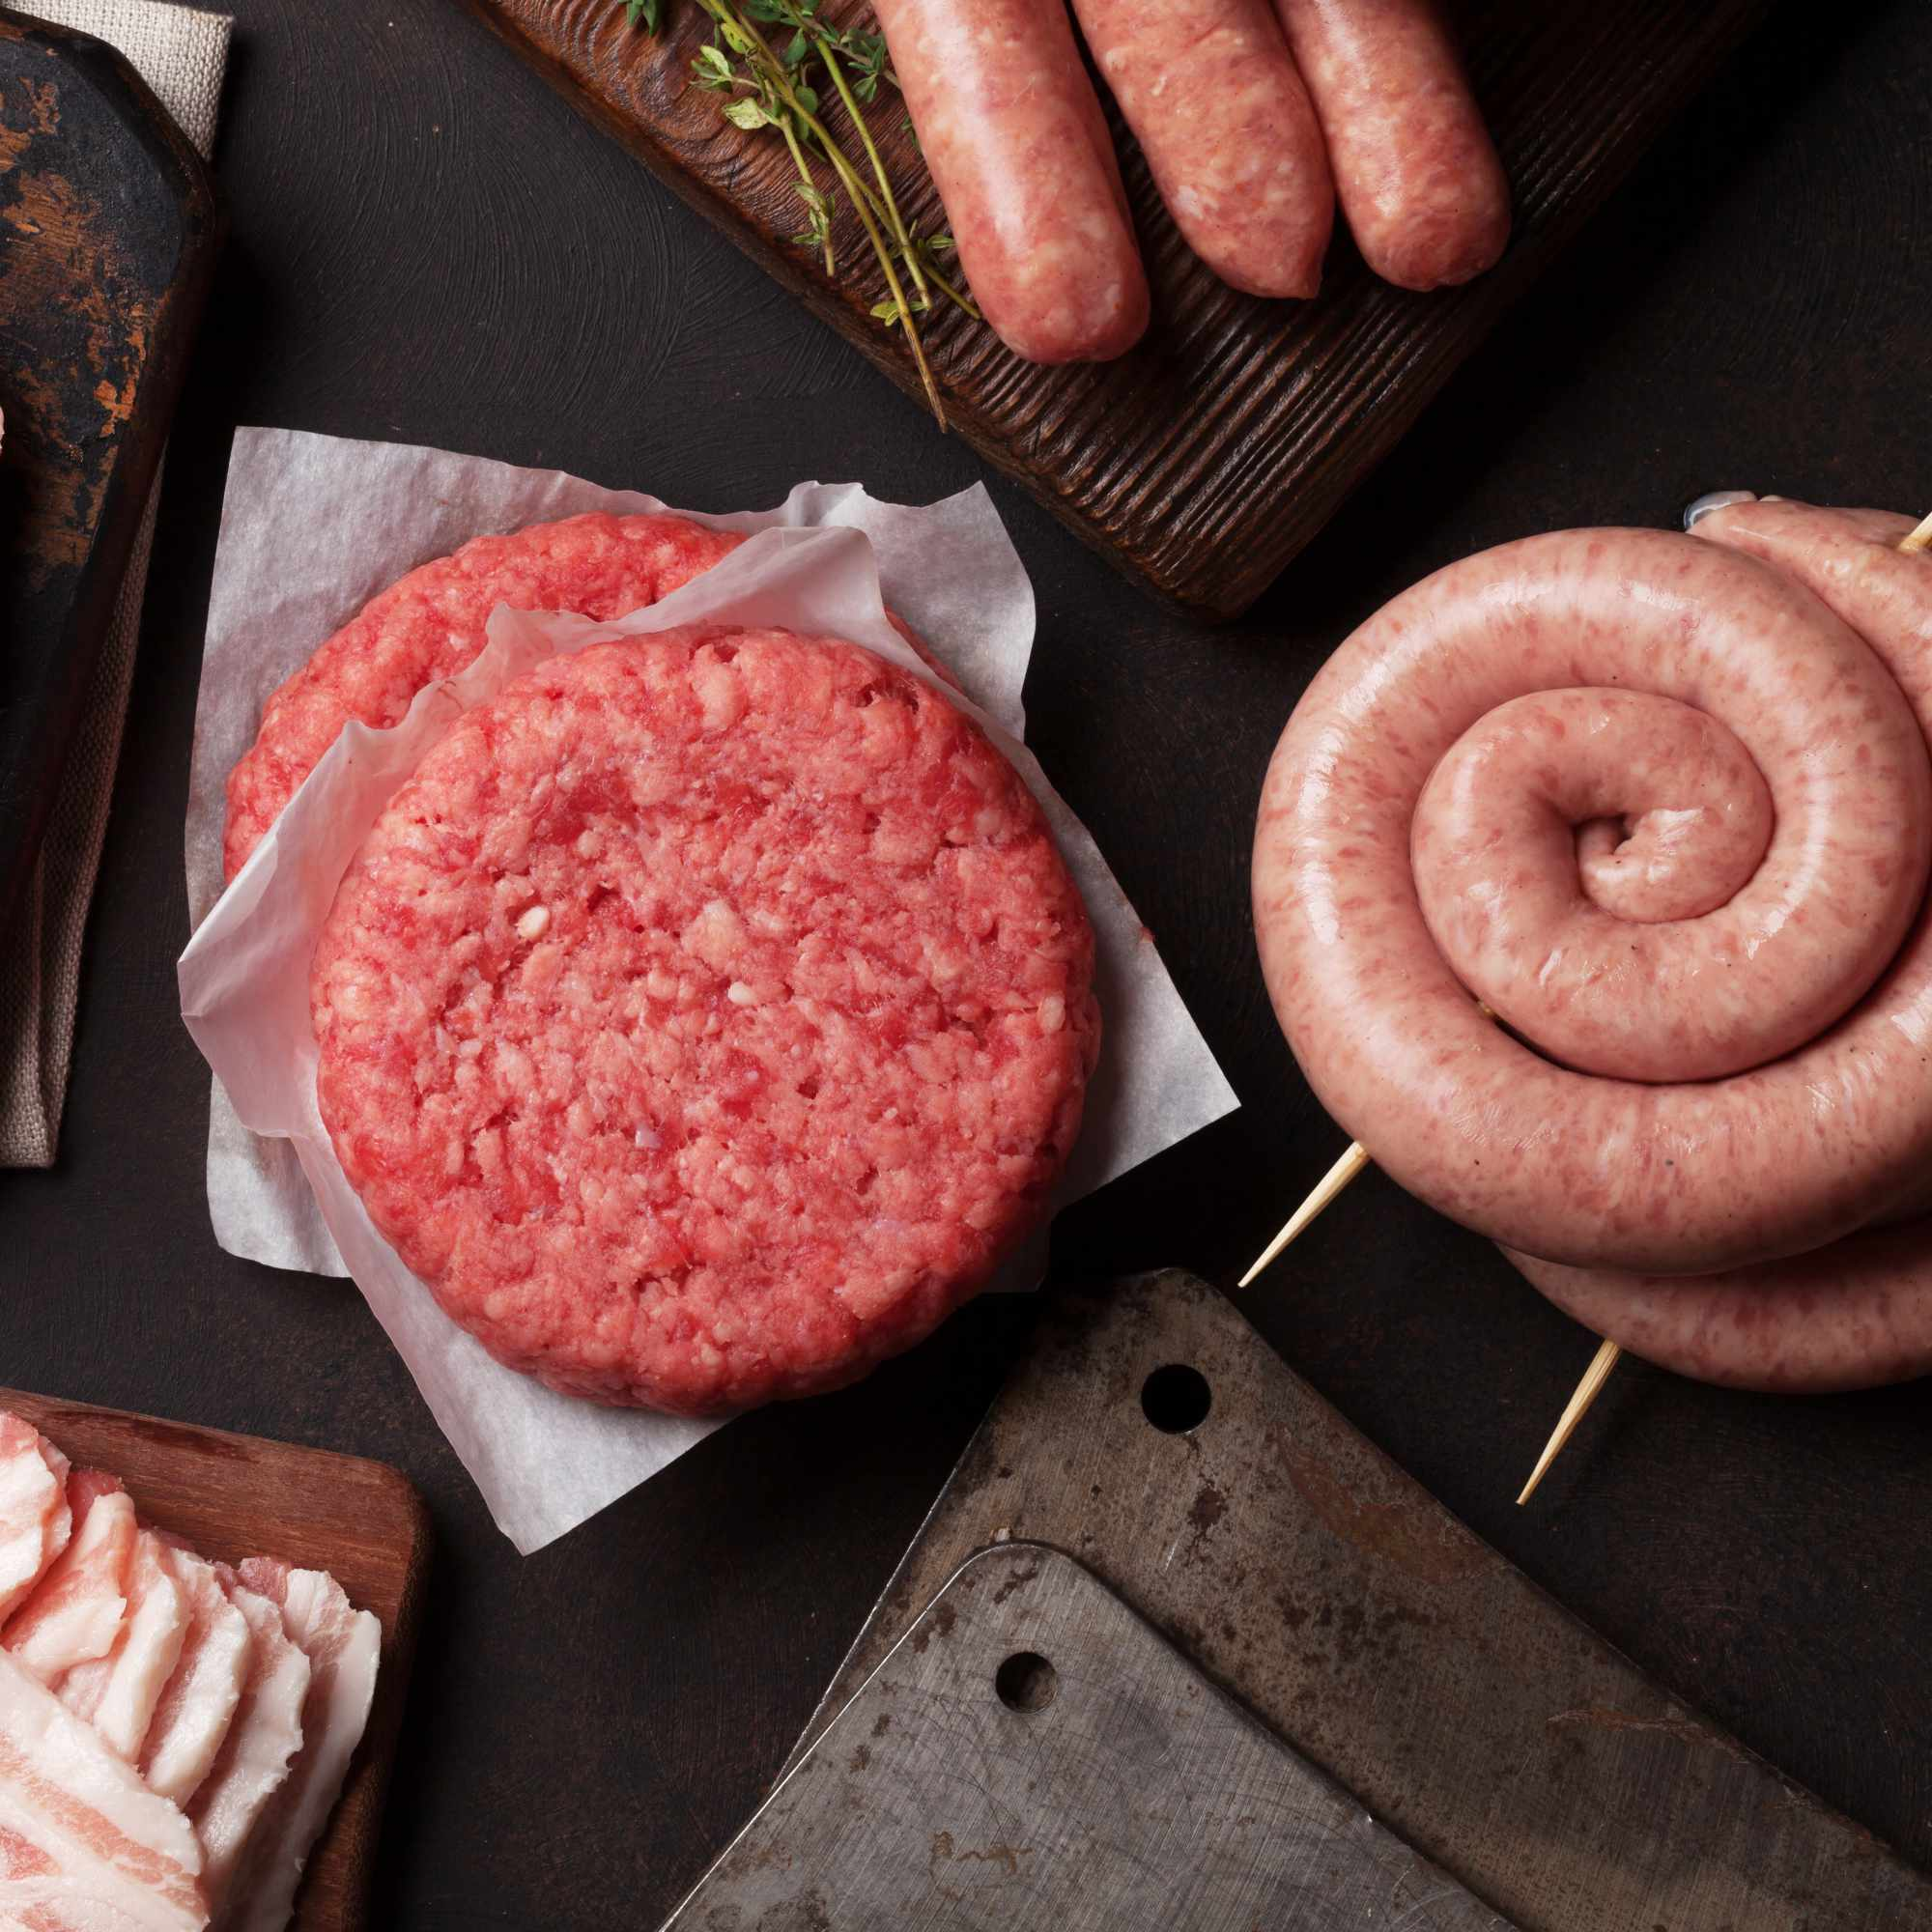 raw-meat-and-sausages-PY7DTL6-1.jpg